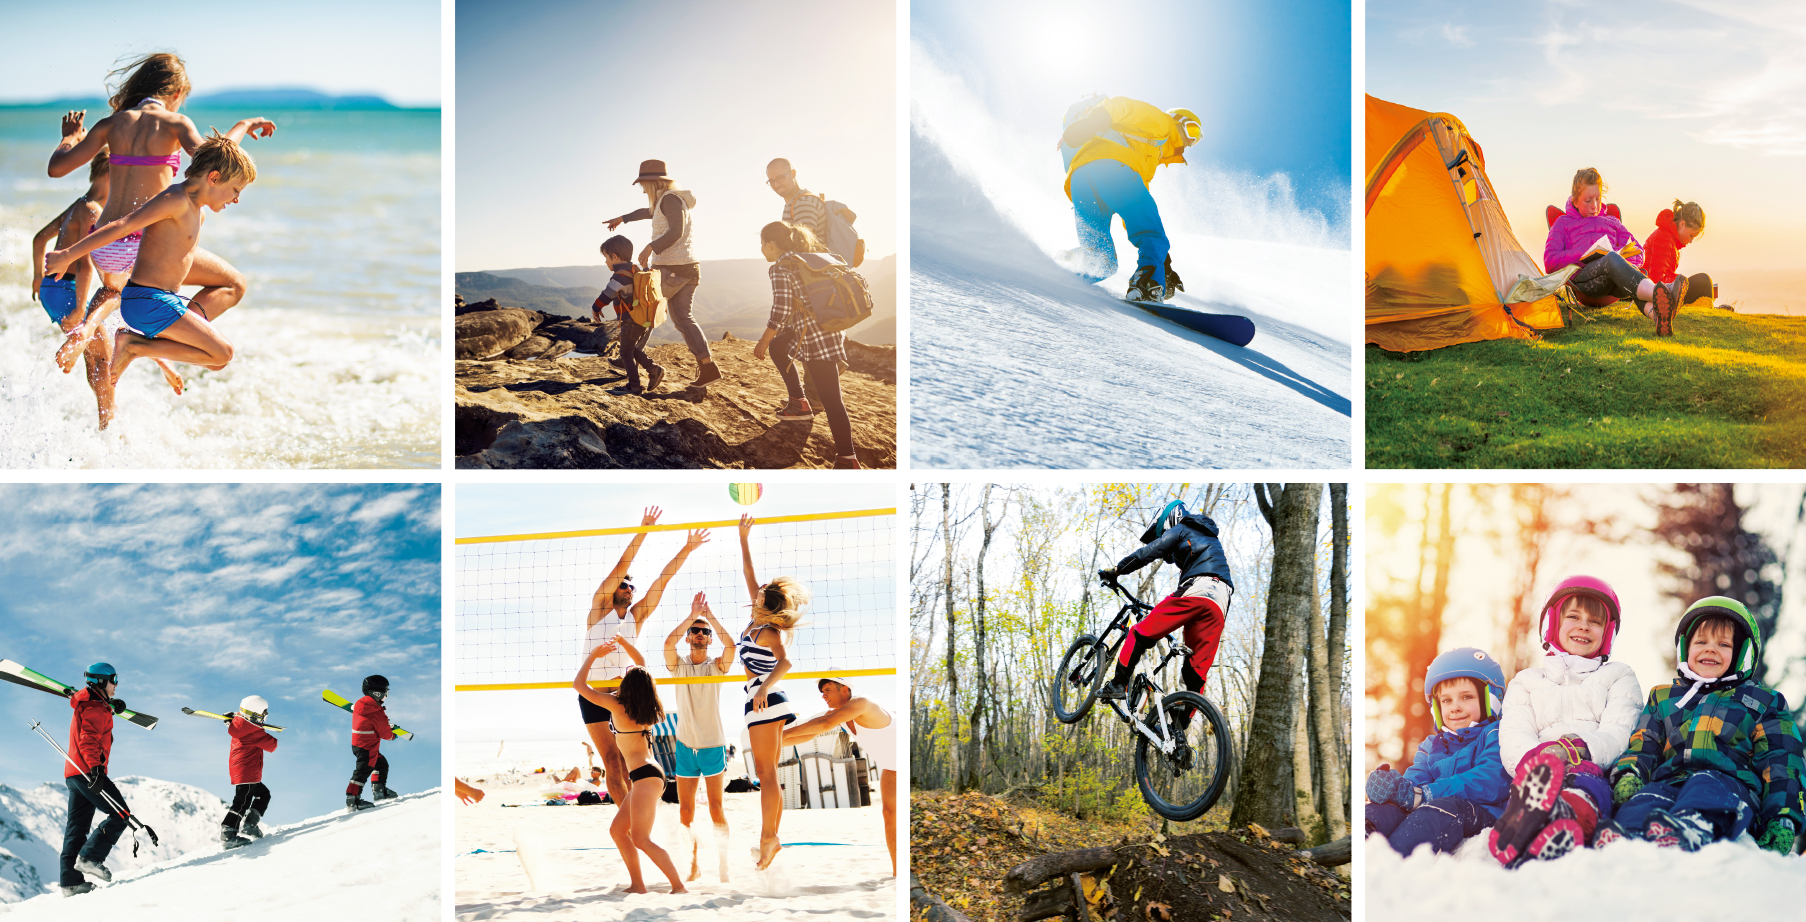 Collage of different outdoor images